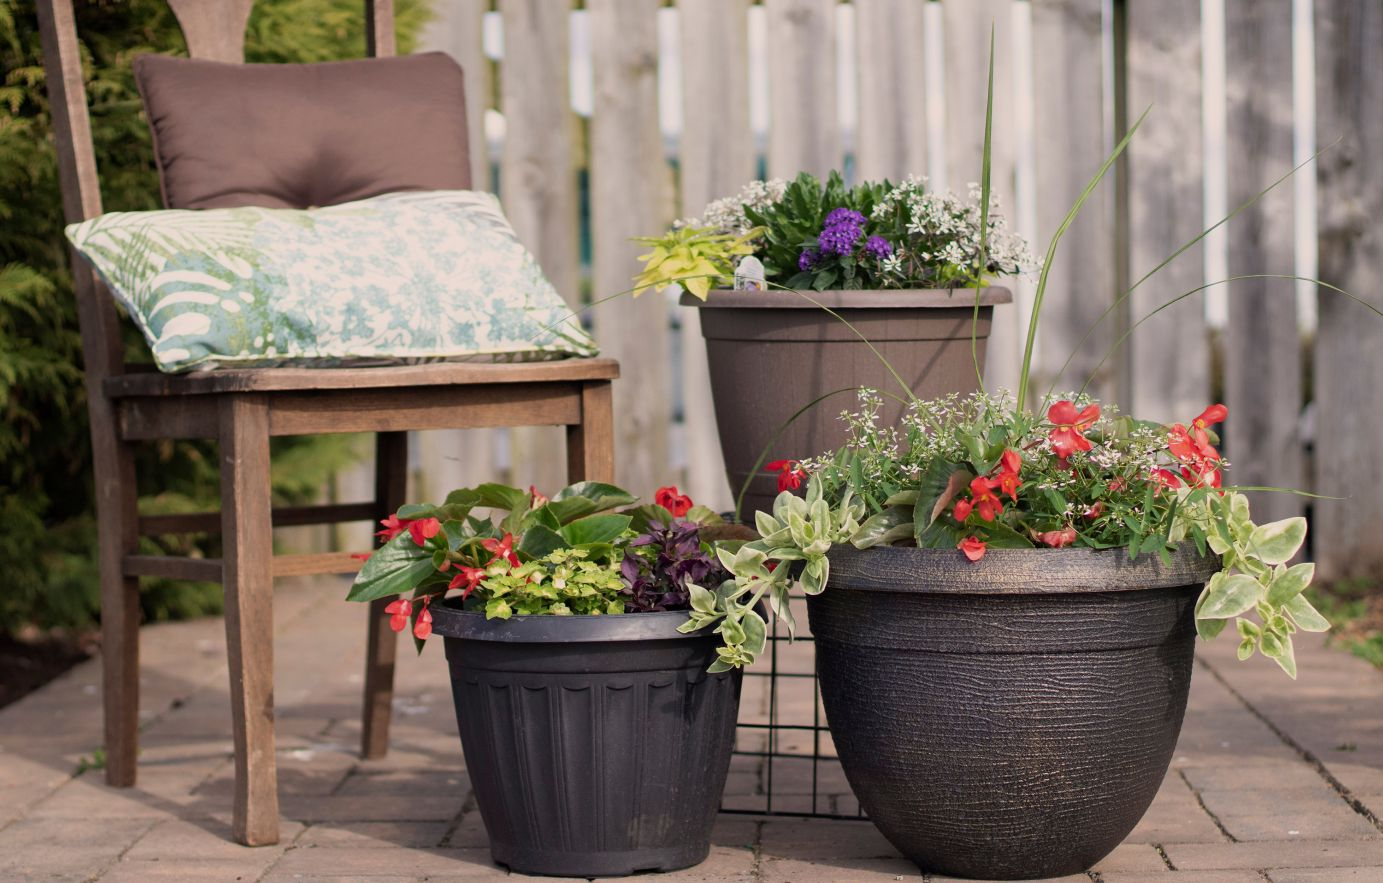 Hanging baskets and color bowls at Flower Wagon in Lititz, PA